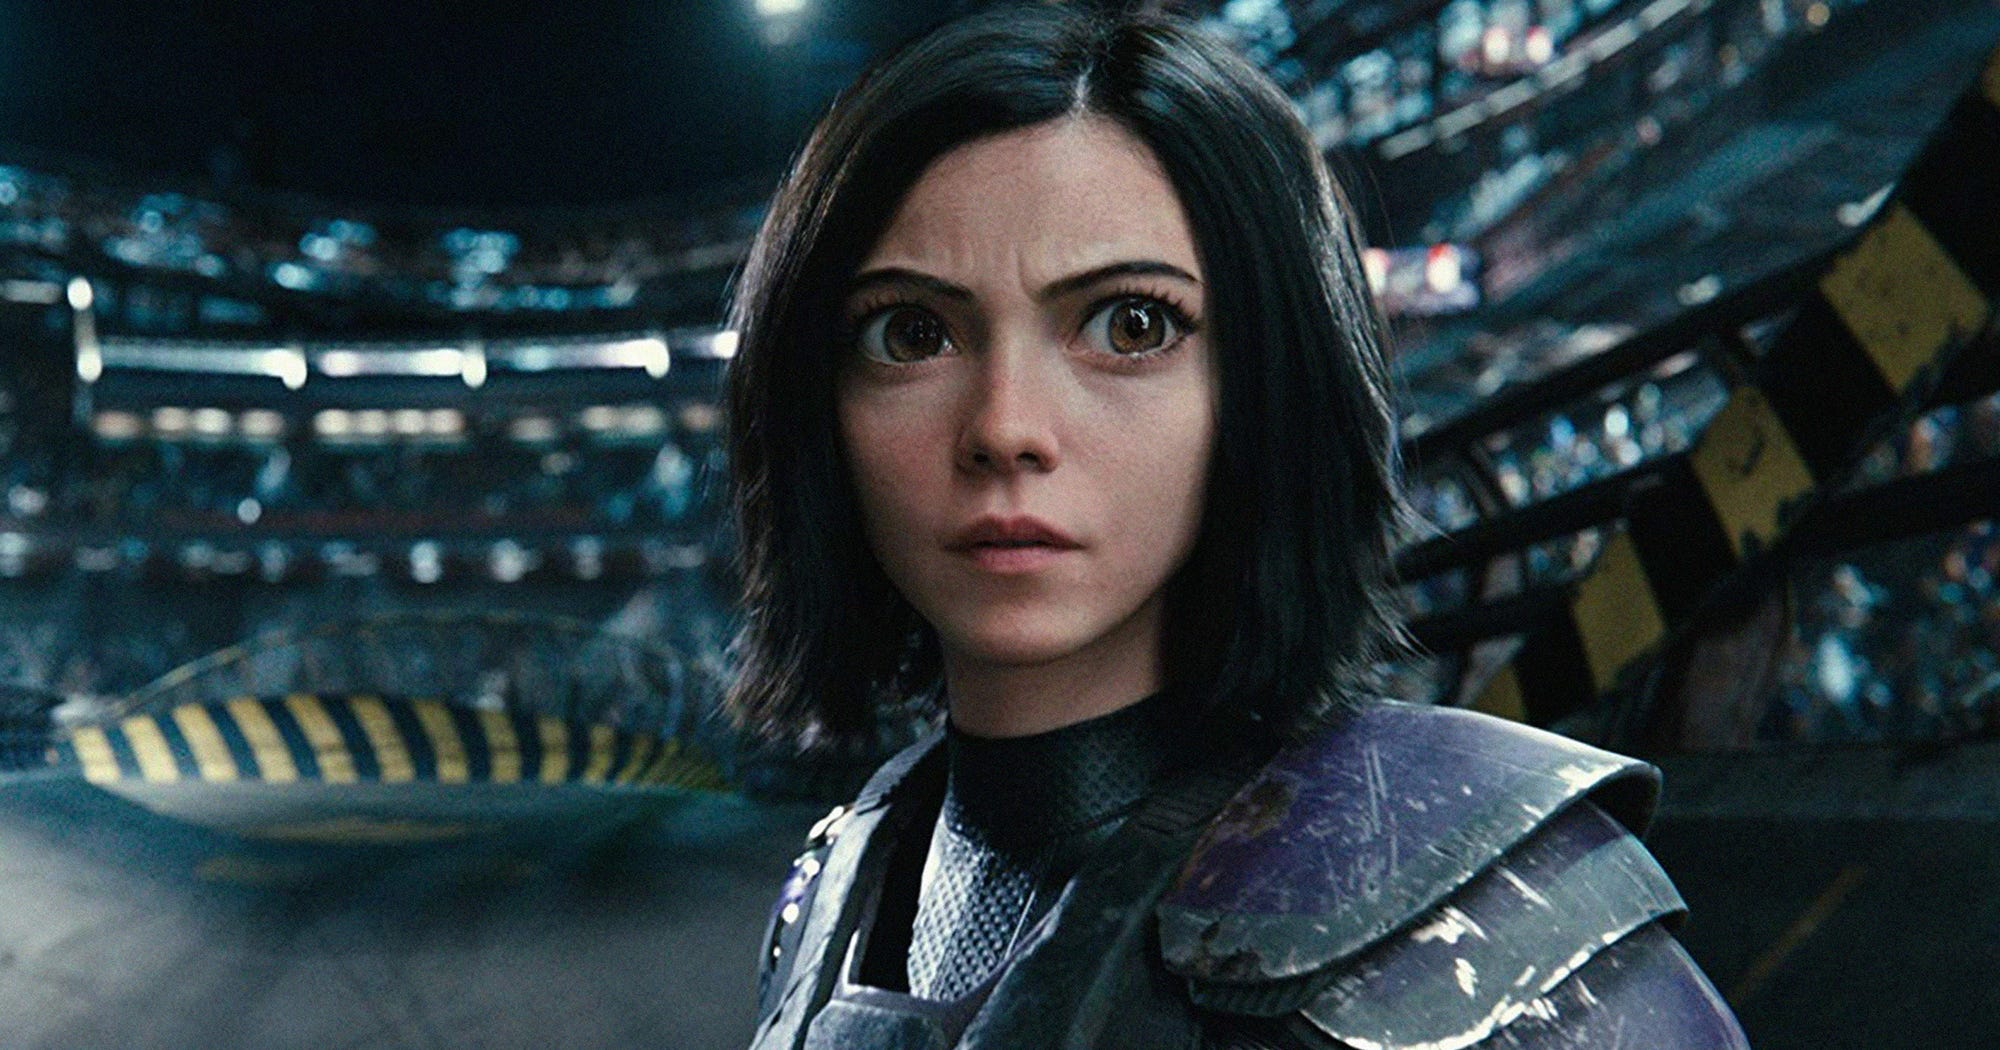 How Much Did Alita Actually Change The Story From Its Source Material?